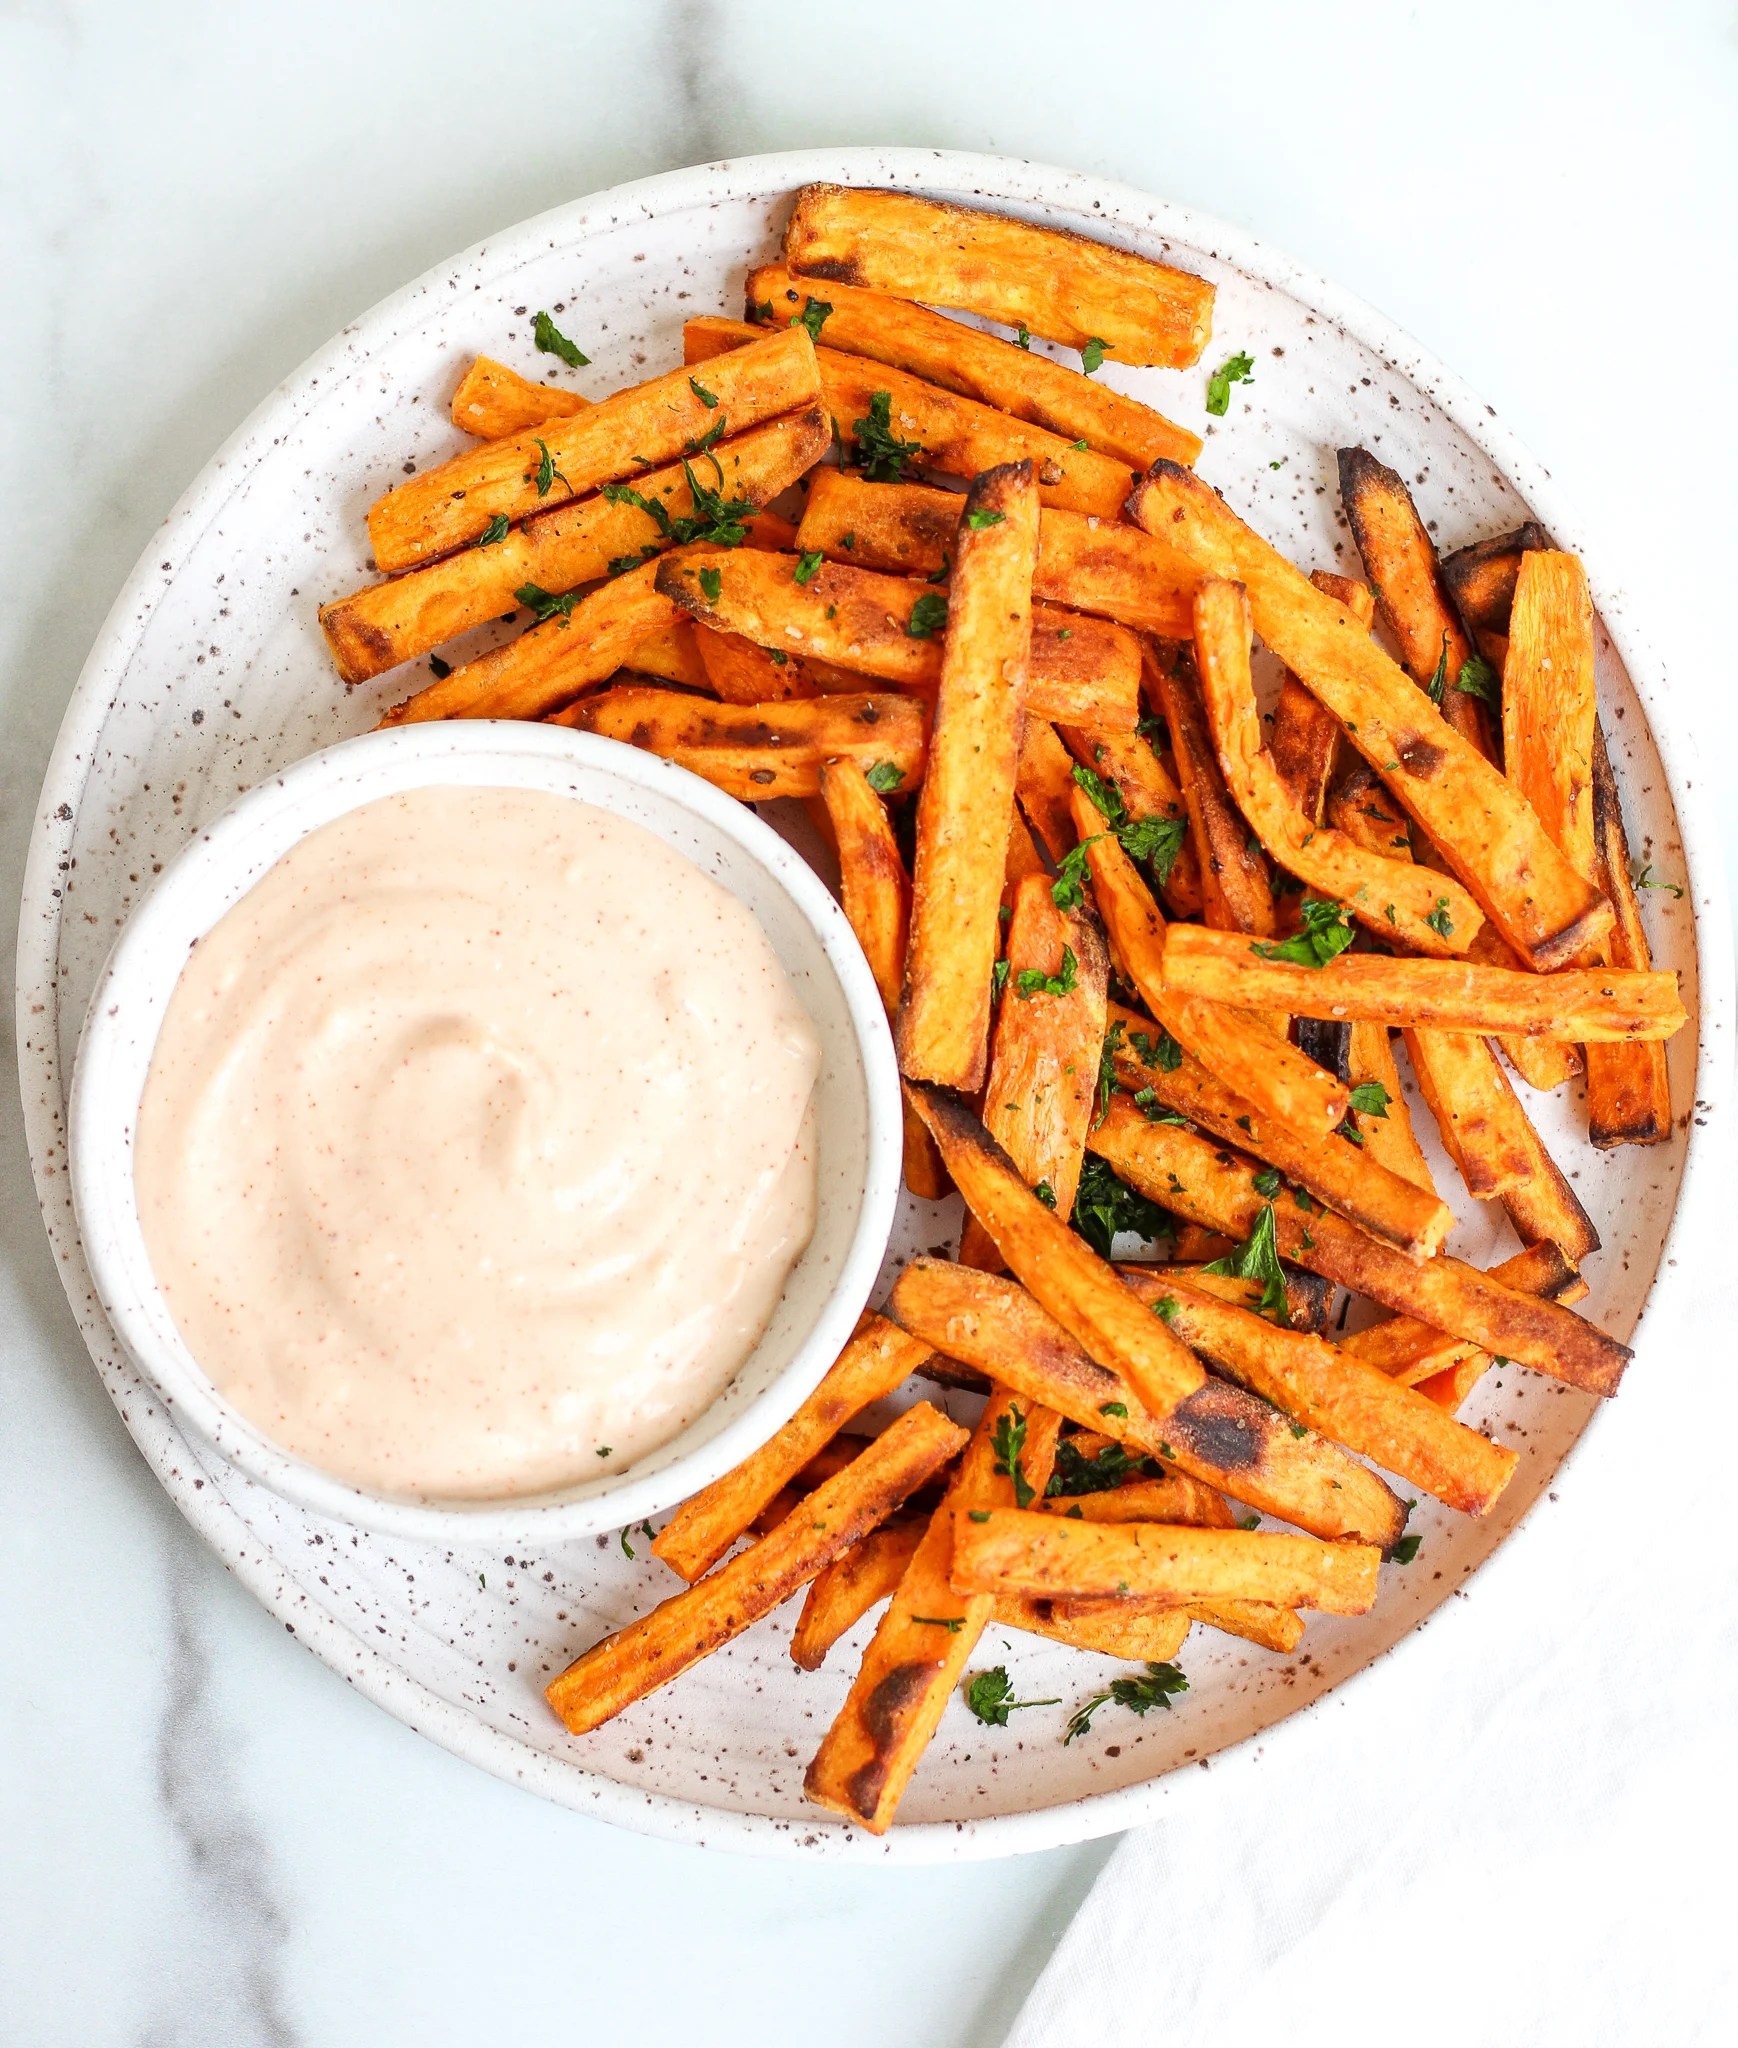 Oven baked sweet potato fries on a ceramic plate served alongside a spicy garlic aioli